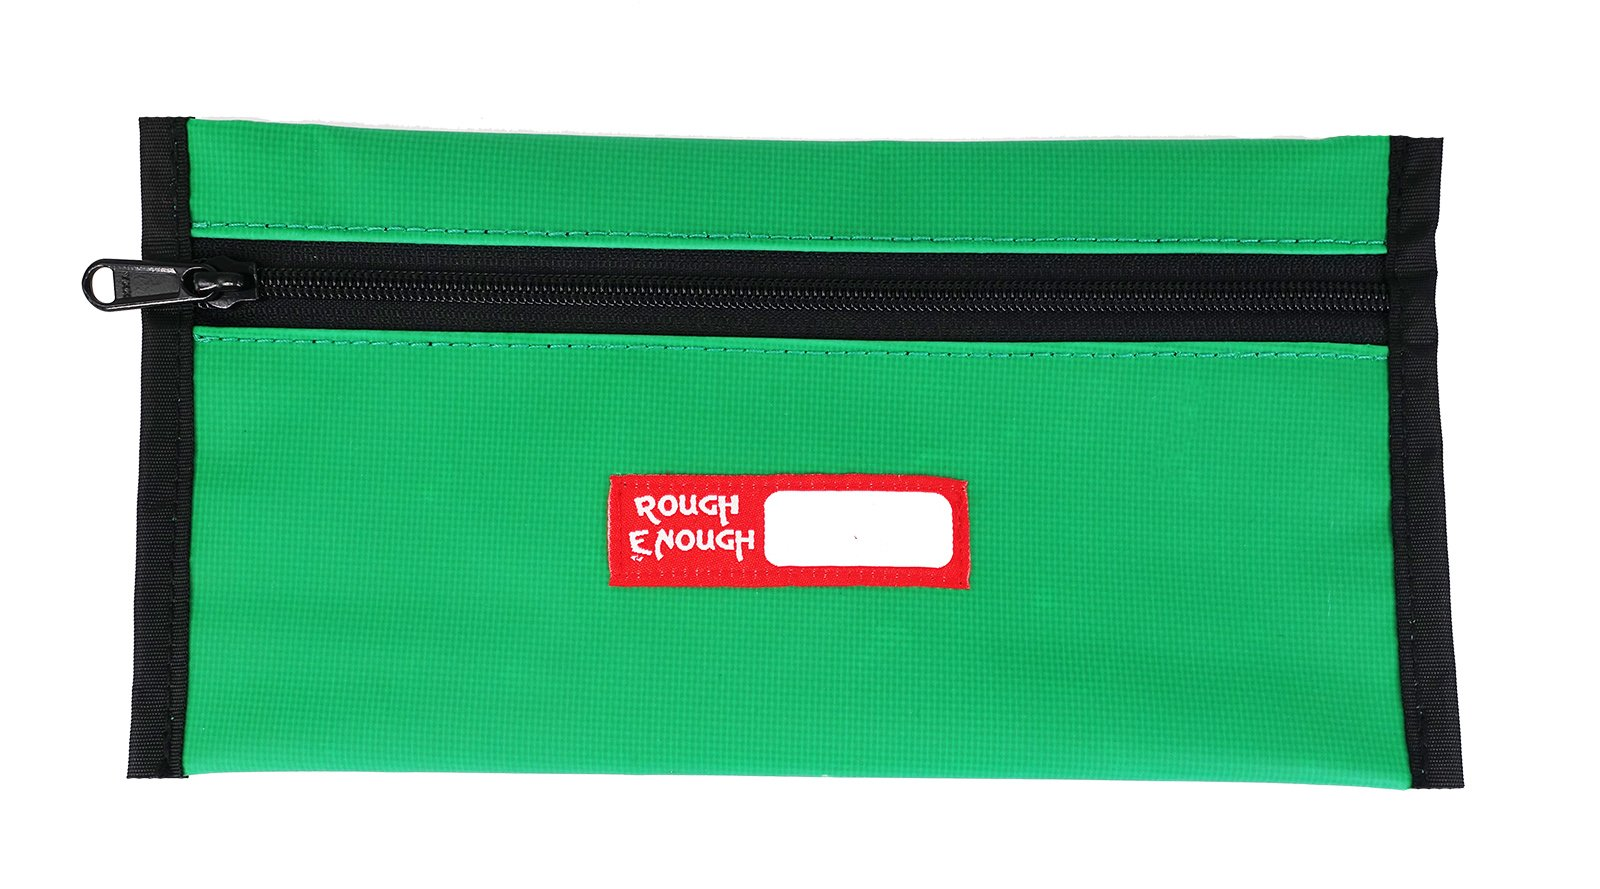 RE ROUGH ENOUGH Rough Enough Durable Tarpaulin Simple Flat Pencil Case Keeper Pouch Bag Organizer Storage Holder with Zipper for School Art Supplies Stationary Kit for Kids Boys Students Green